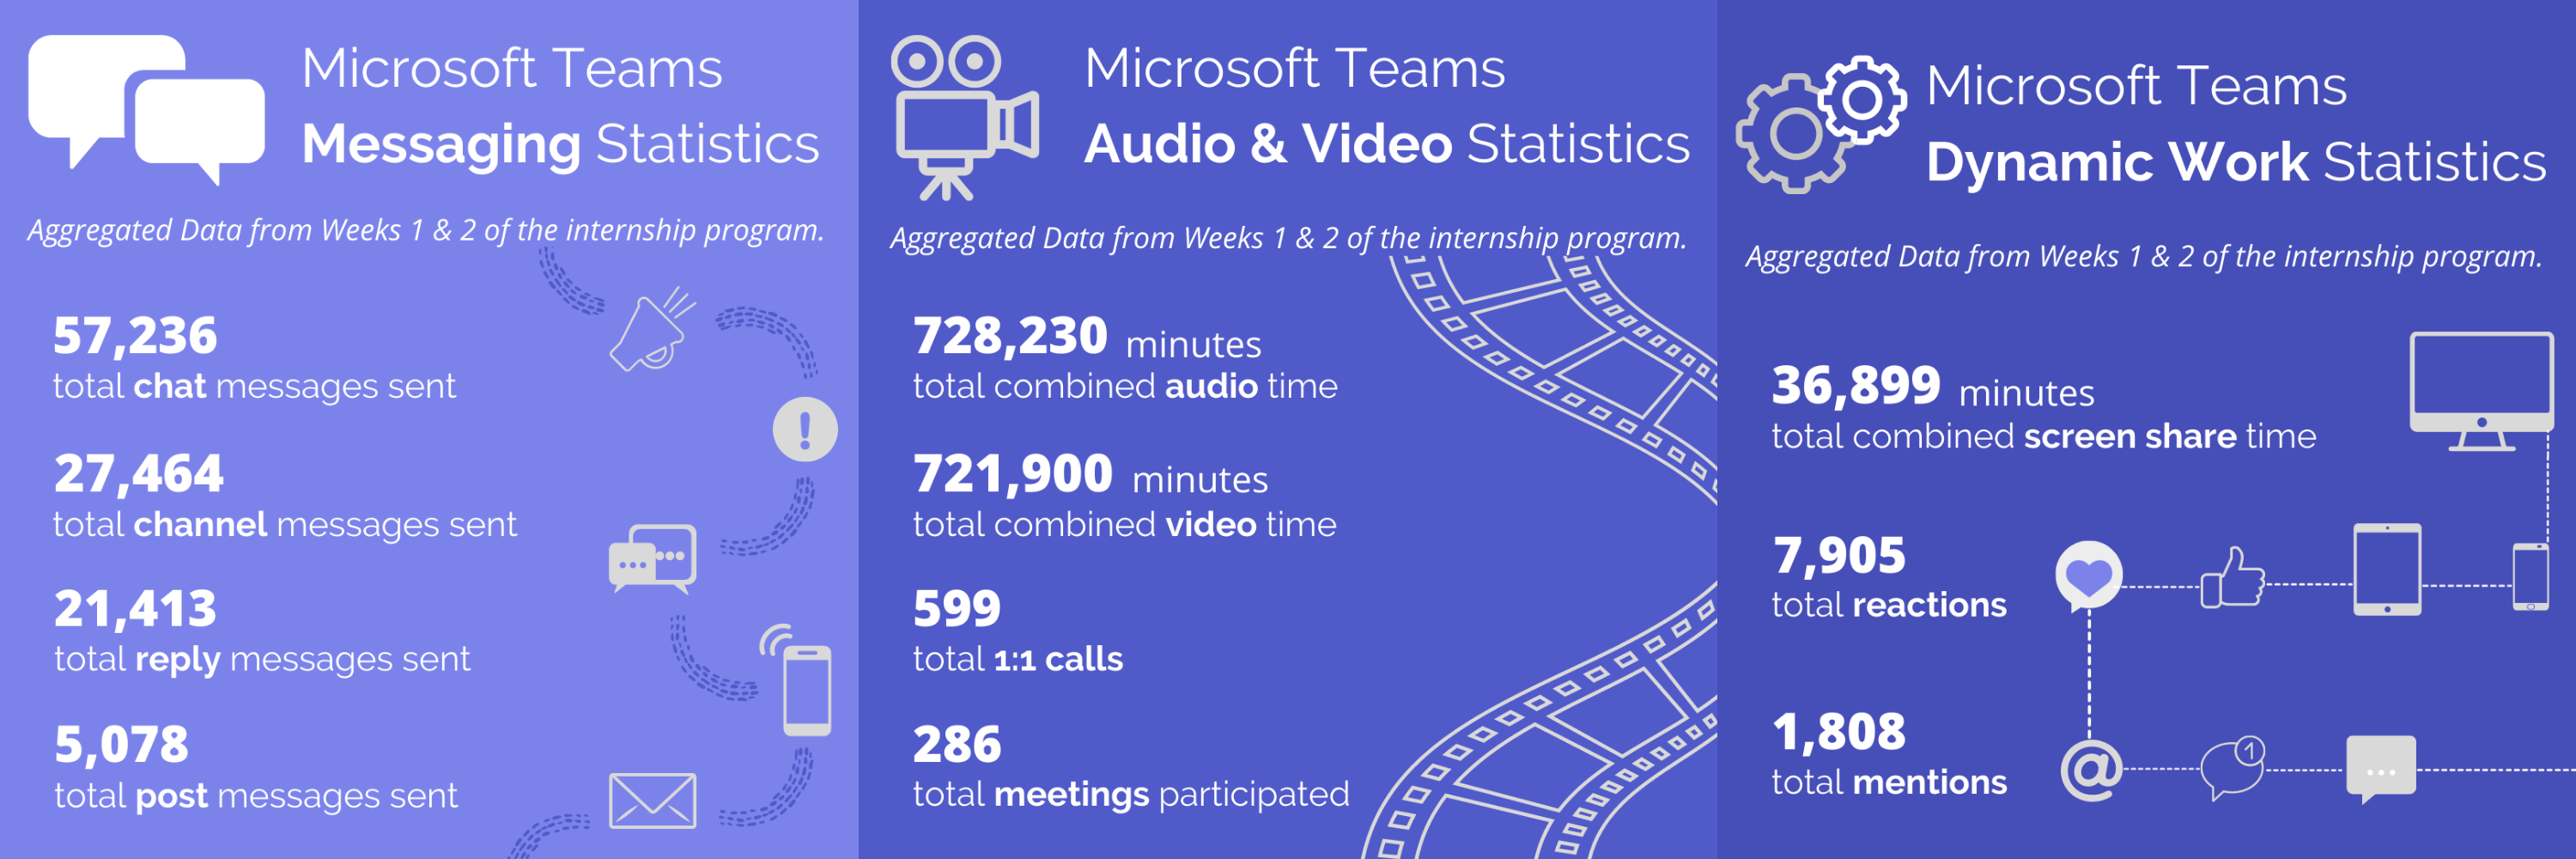 Microsoft Teams Statistics from Skills Village